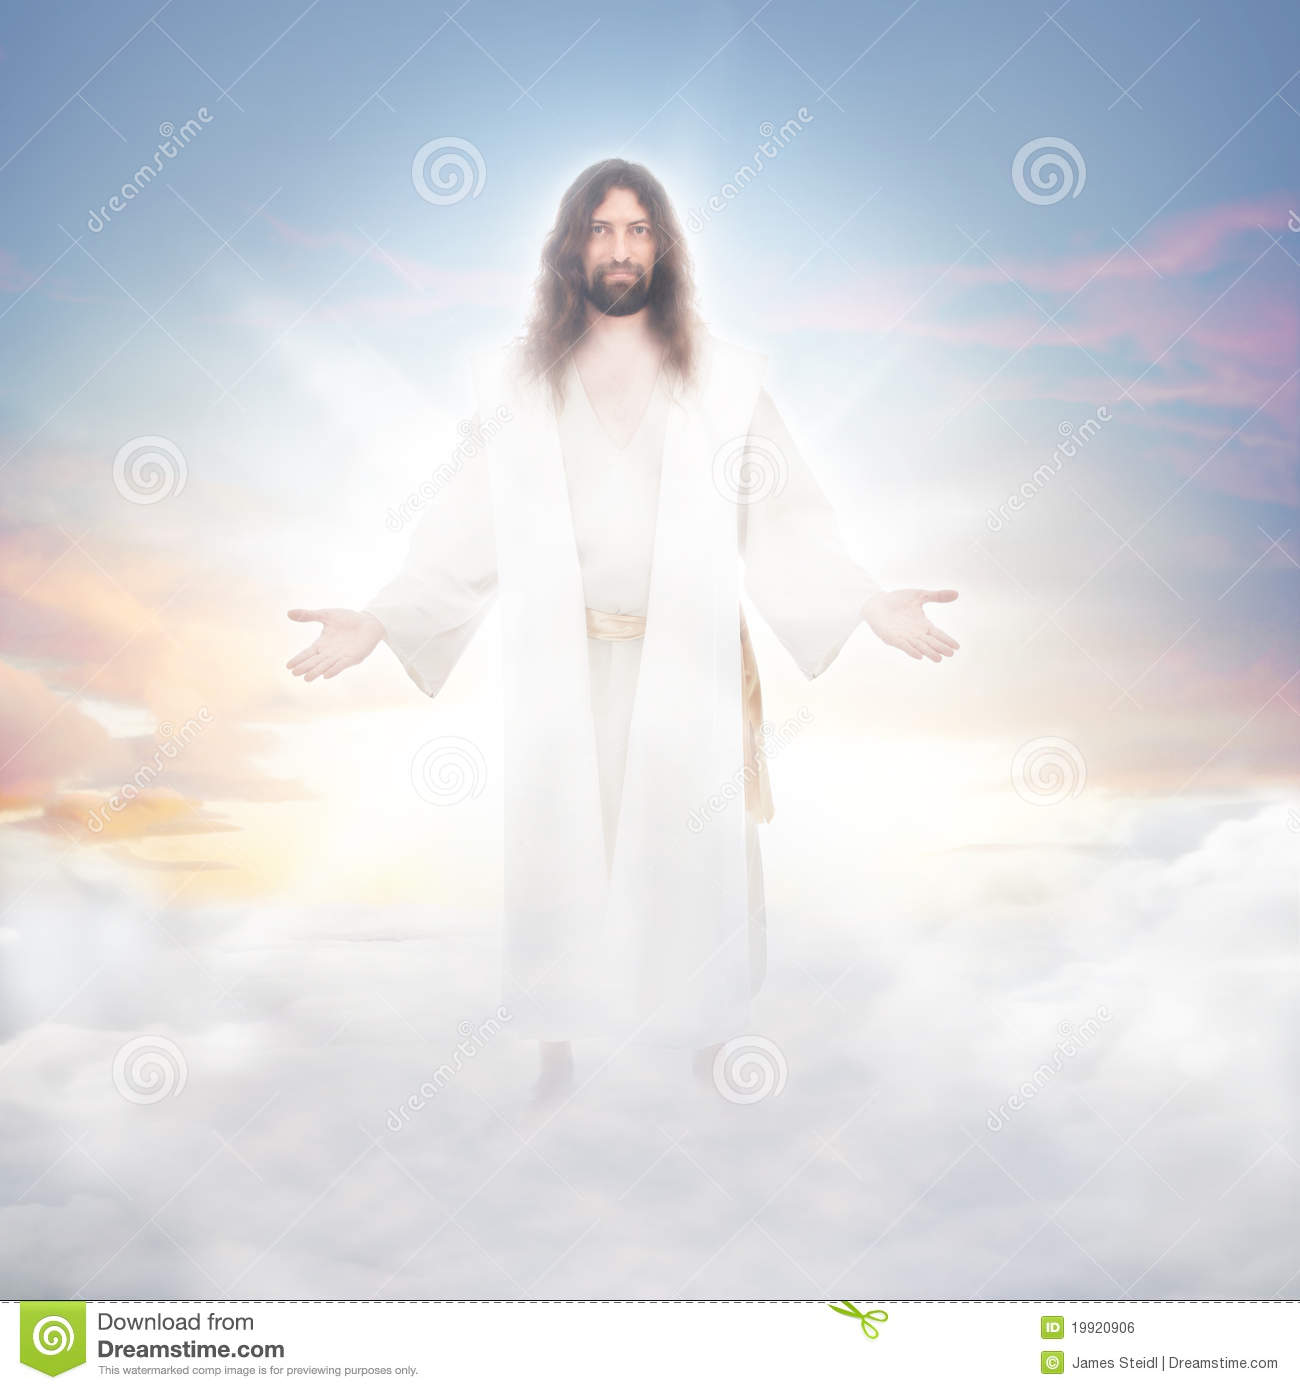 jesus in the clouds royalty free stock image image 19920906